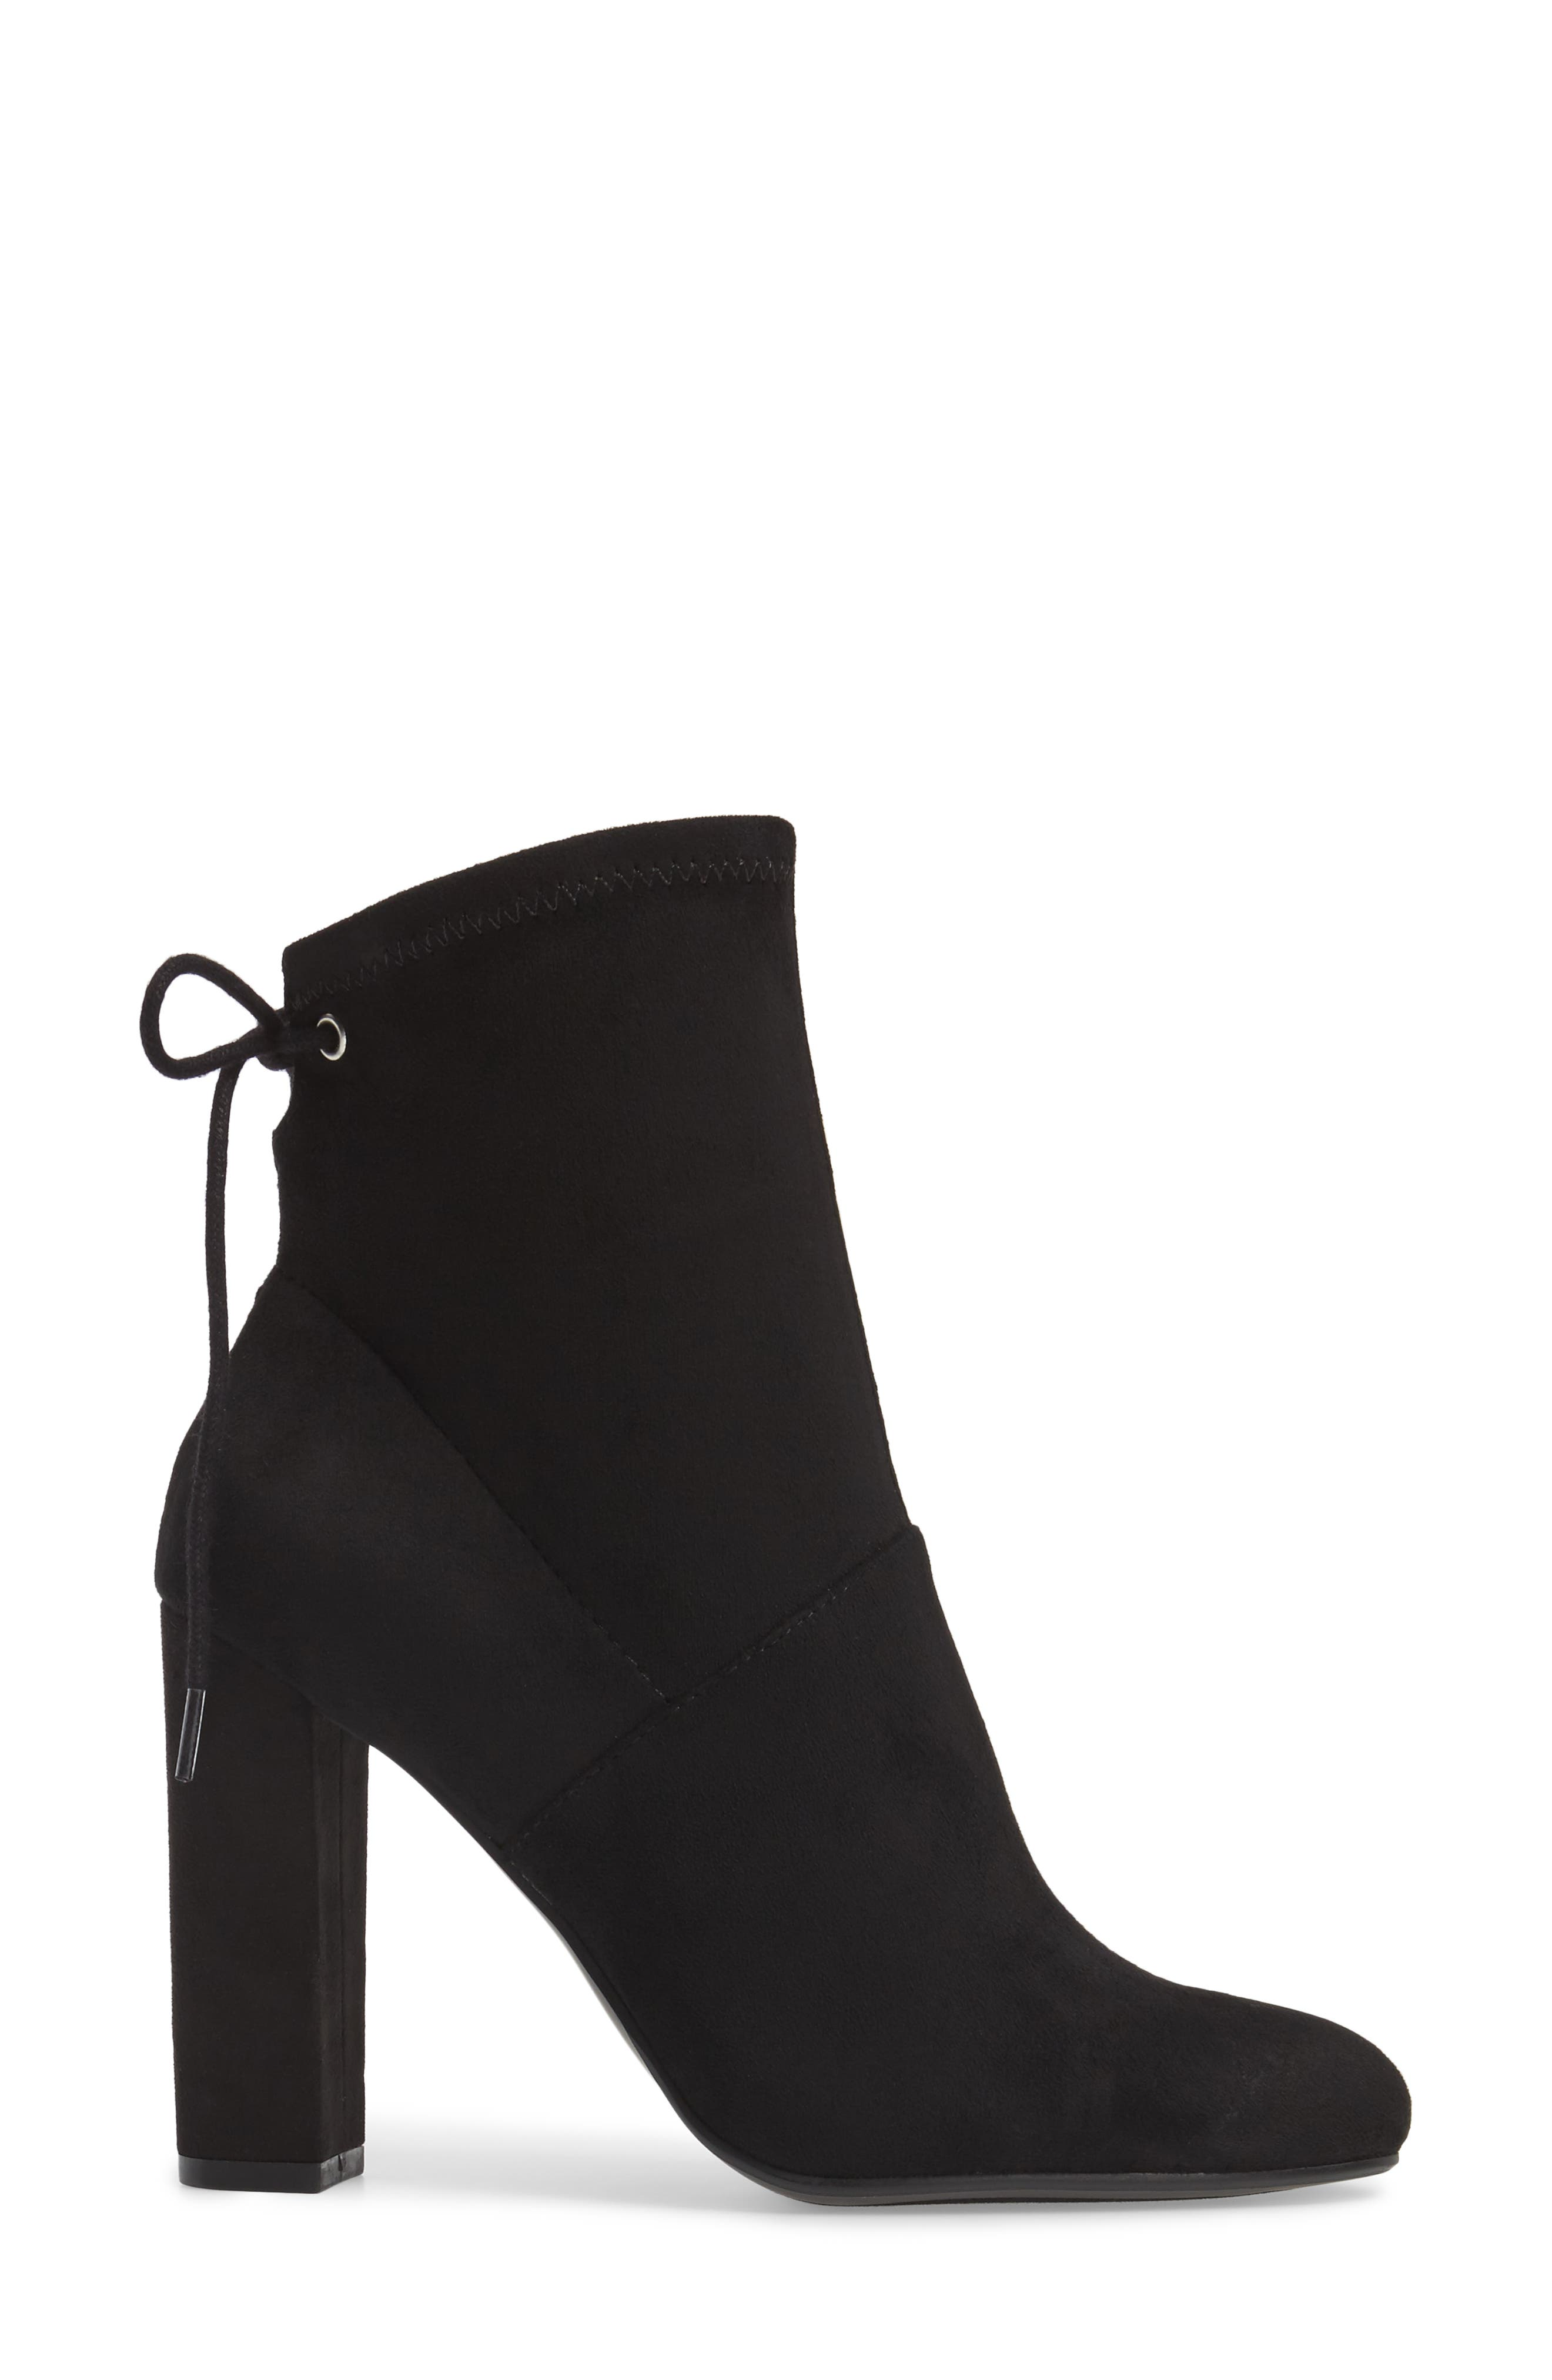 Enact Tie-Back Bootie,                             Alternate thumbnail 3, color,                             Black